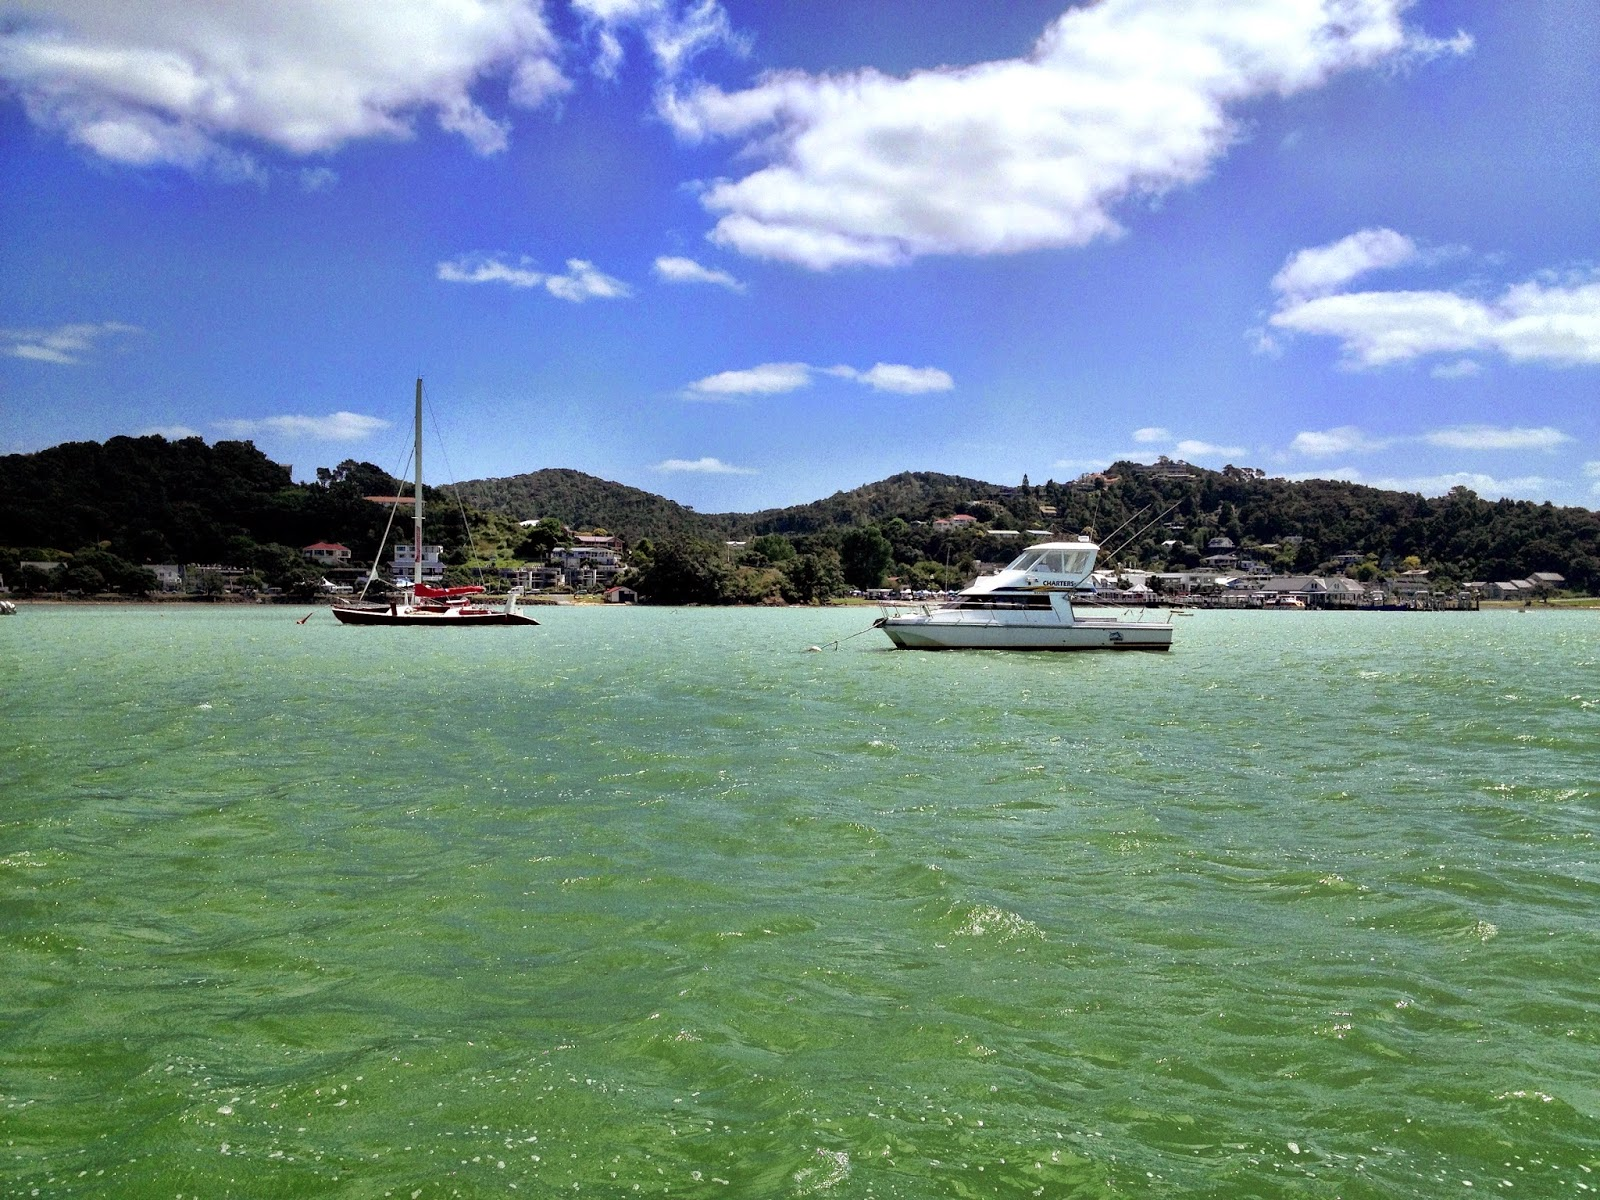 Scenery in the Bay of Islands